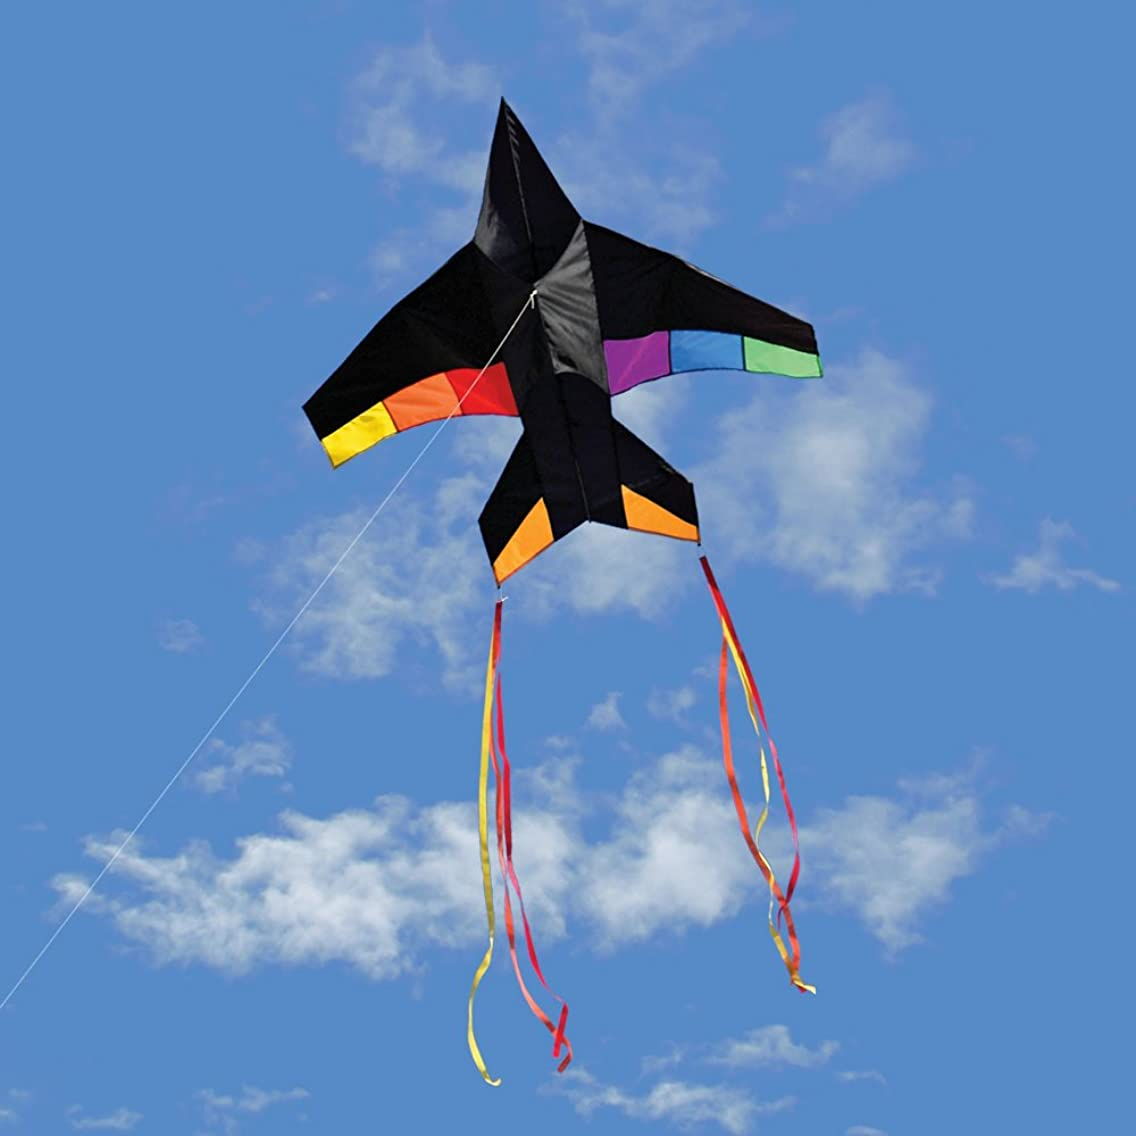 Into The Wind Rainbow Jet Plane Kite with Tails